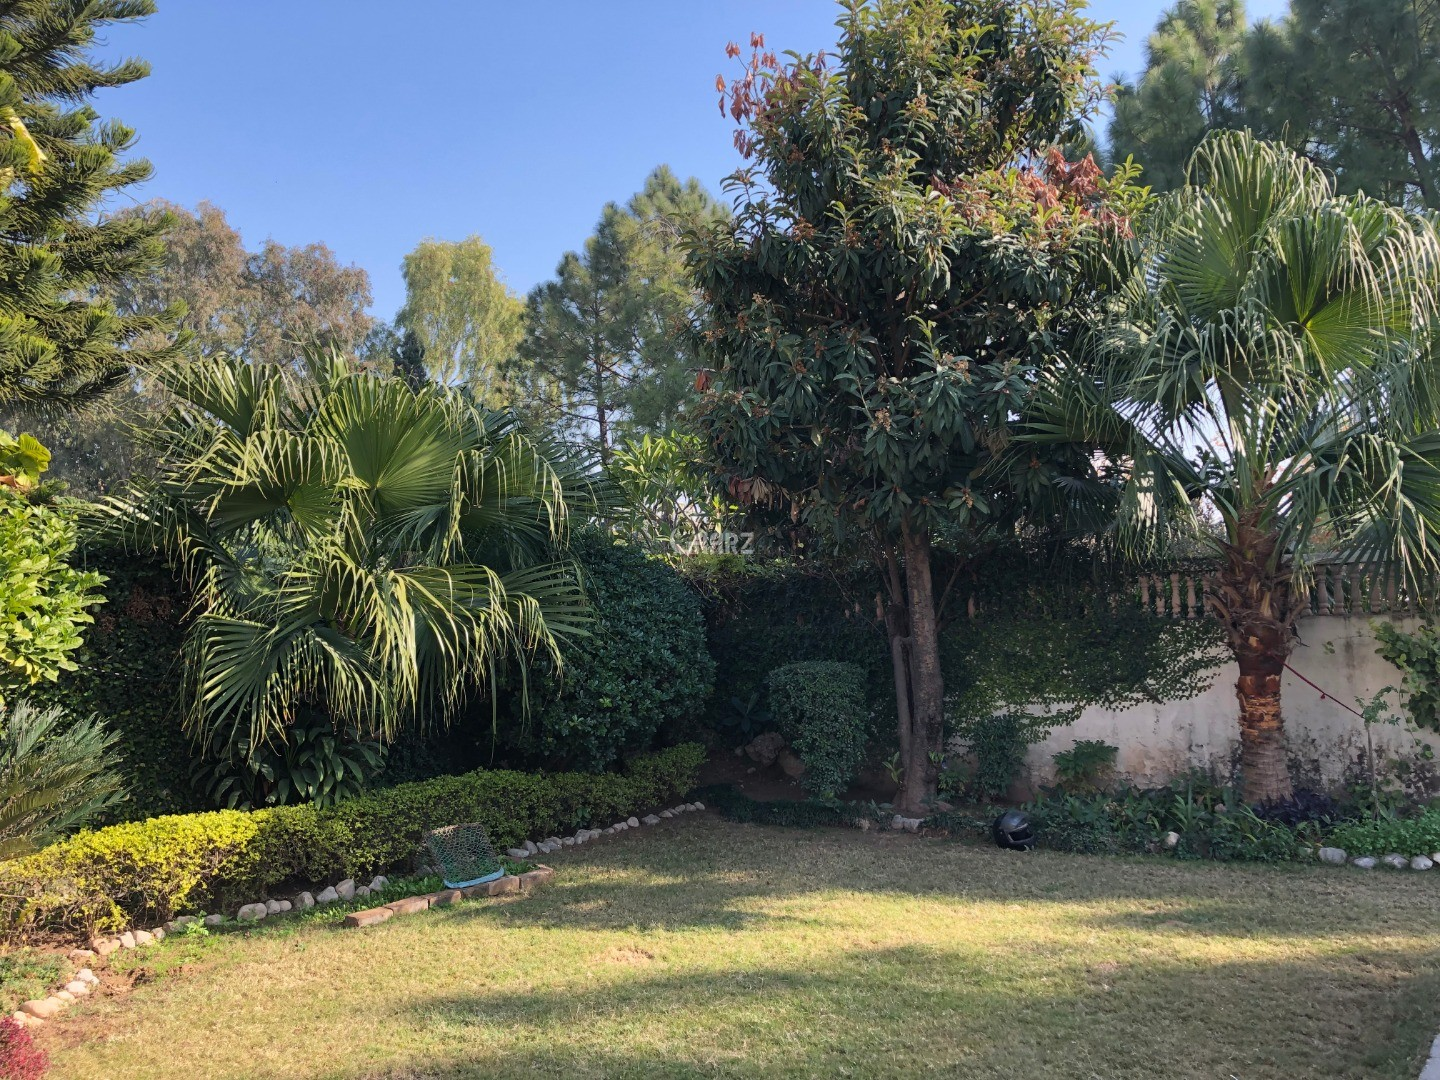 10 Marla House for Sale in Islamabad F-10/4